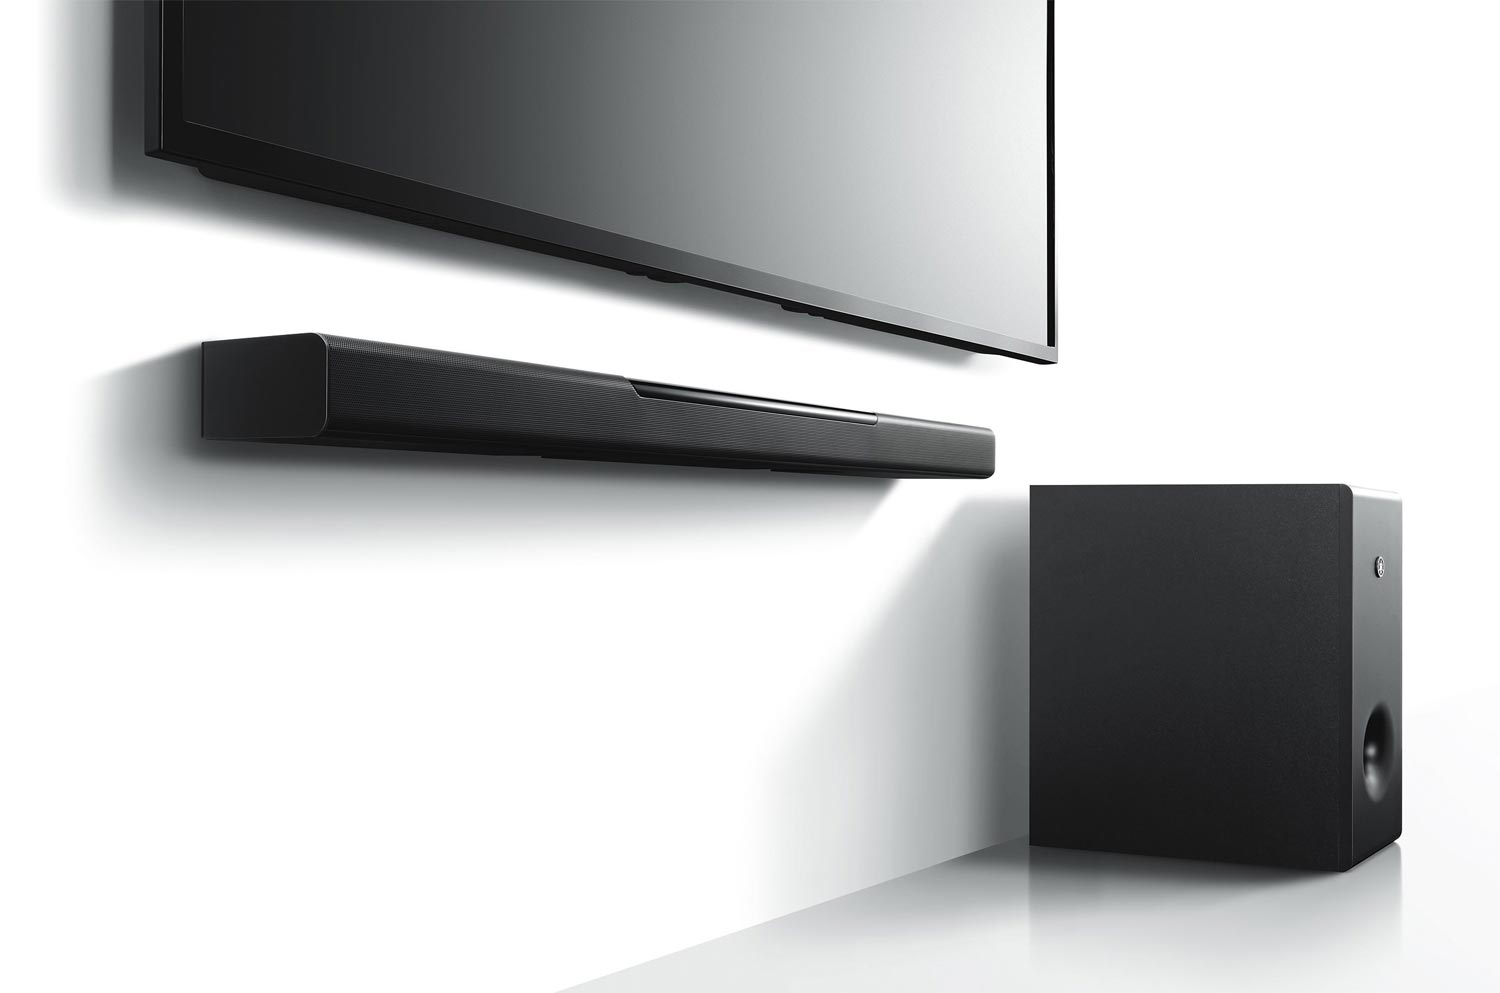 yamaha musiccast bar 400 soundbar f r hi res audio 4k filme. Black Bedroom Furniture Sets. Home Design Ideas